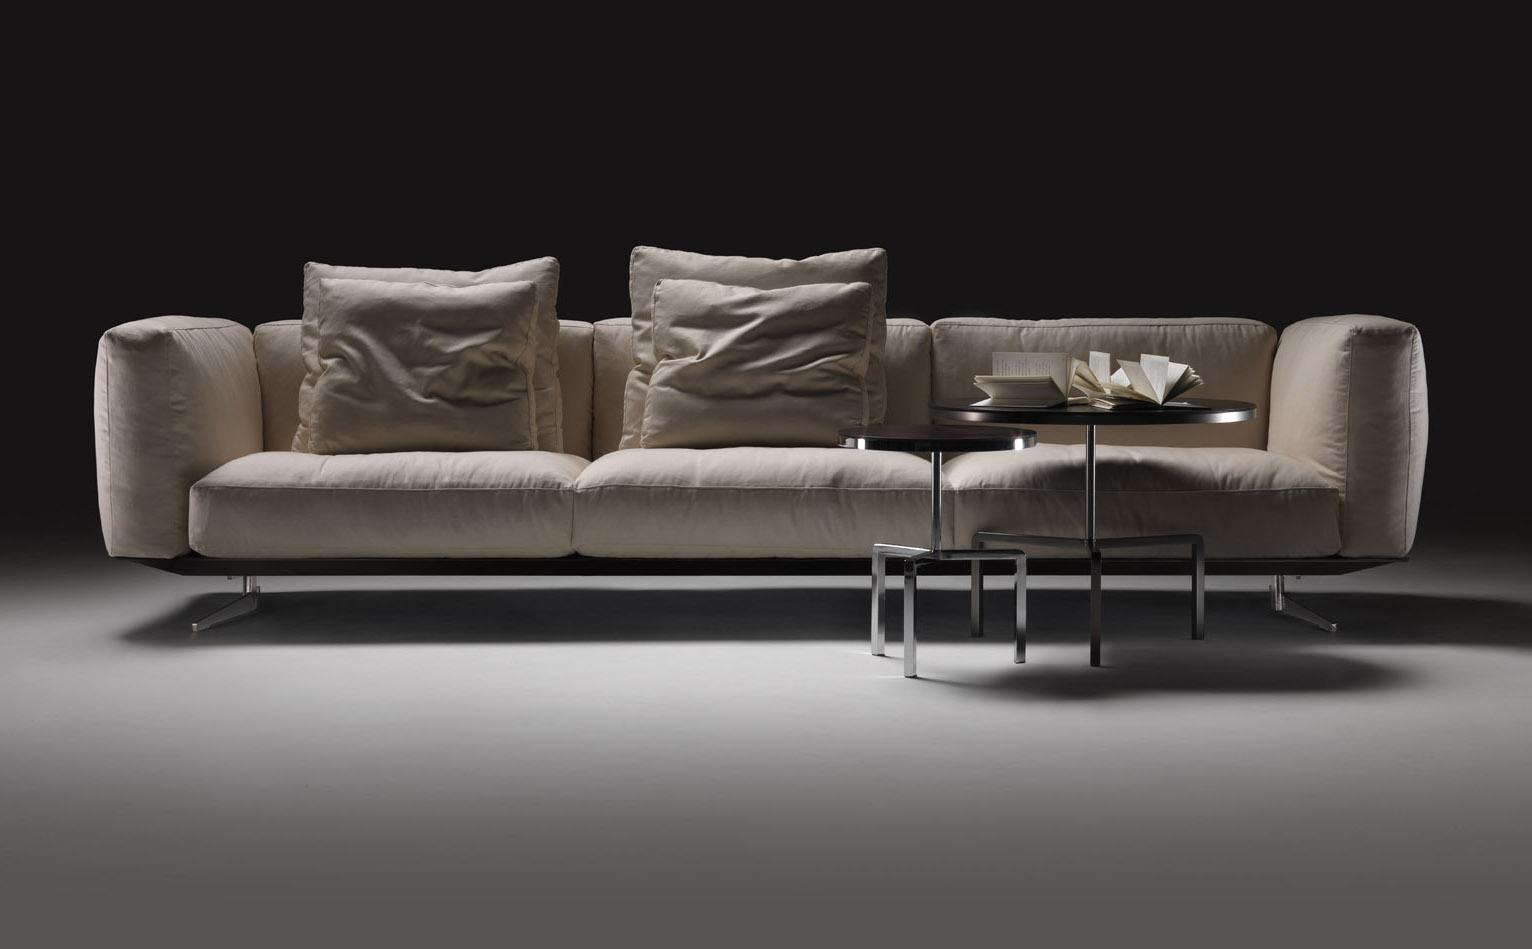 Down Filled Leather Sectional Sofa Cb2 Frost Sleeper Soft Dream By Flexform - Designer Furniture: Fitted ...